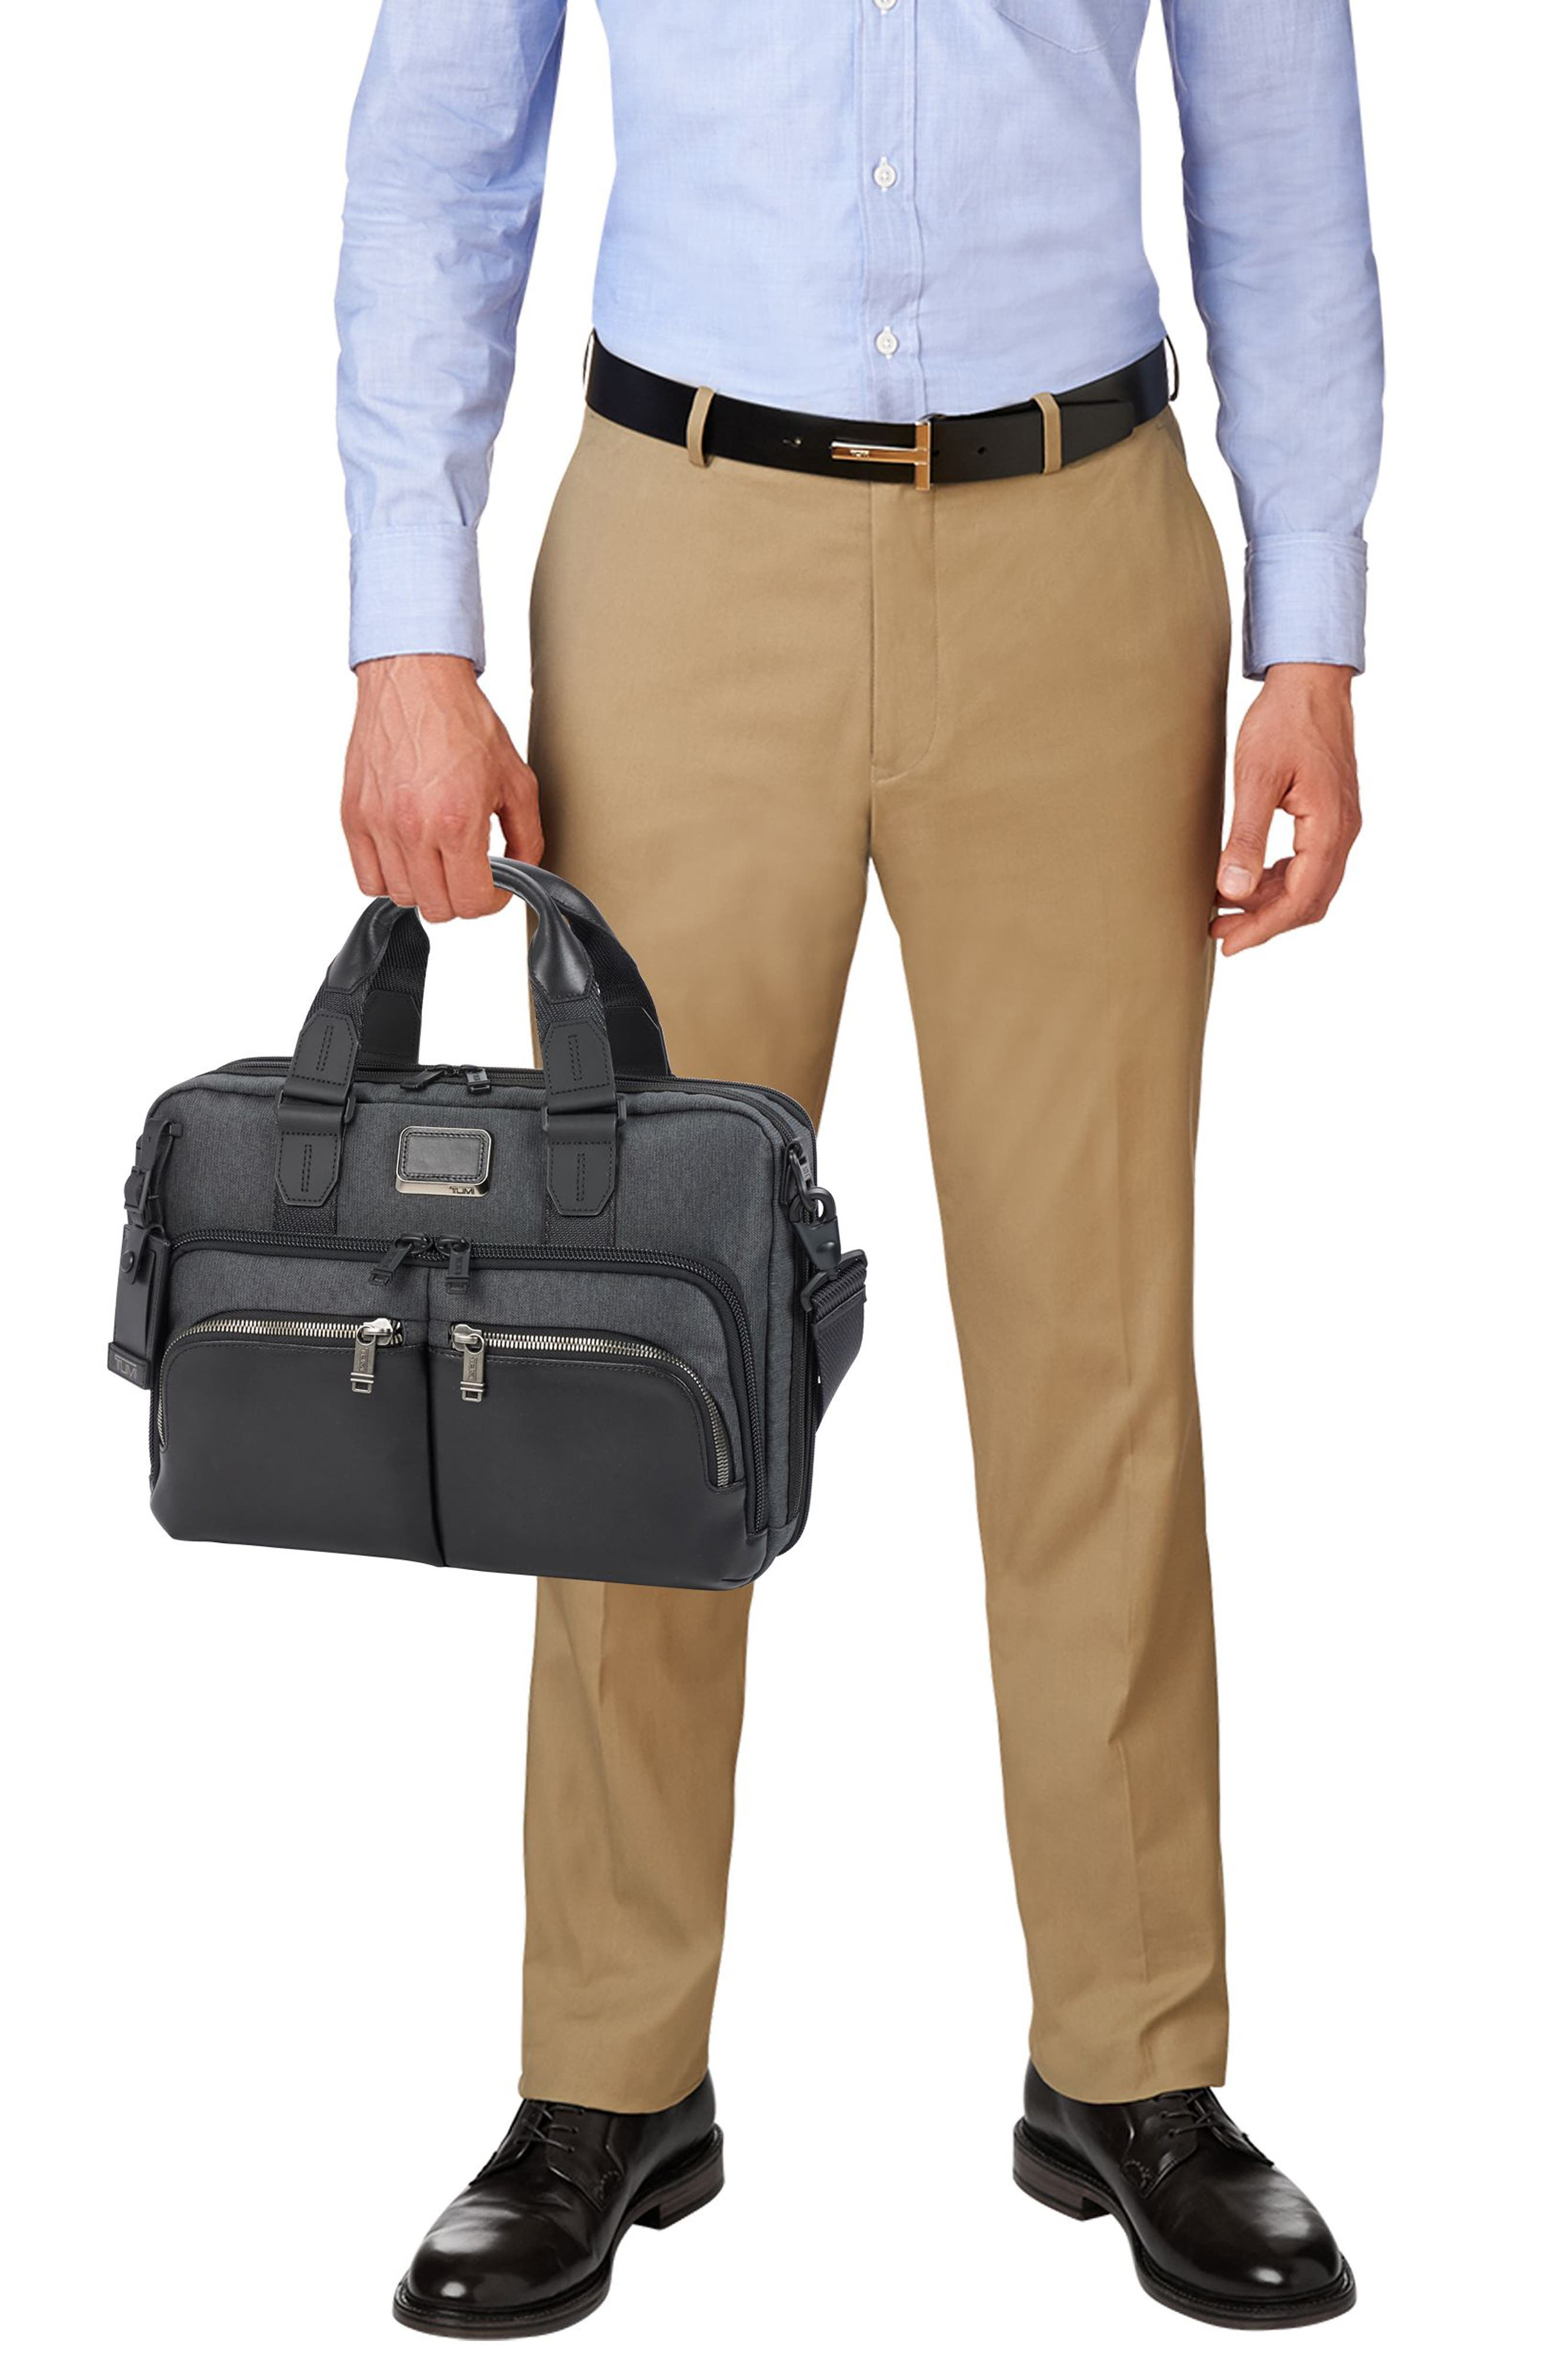 Albany - Slim Commuter Briefcase,                             Alternate thumbnail 6, color,                             020